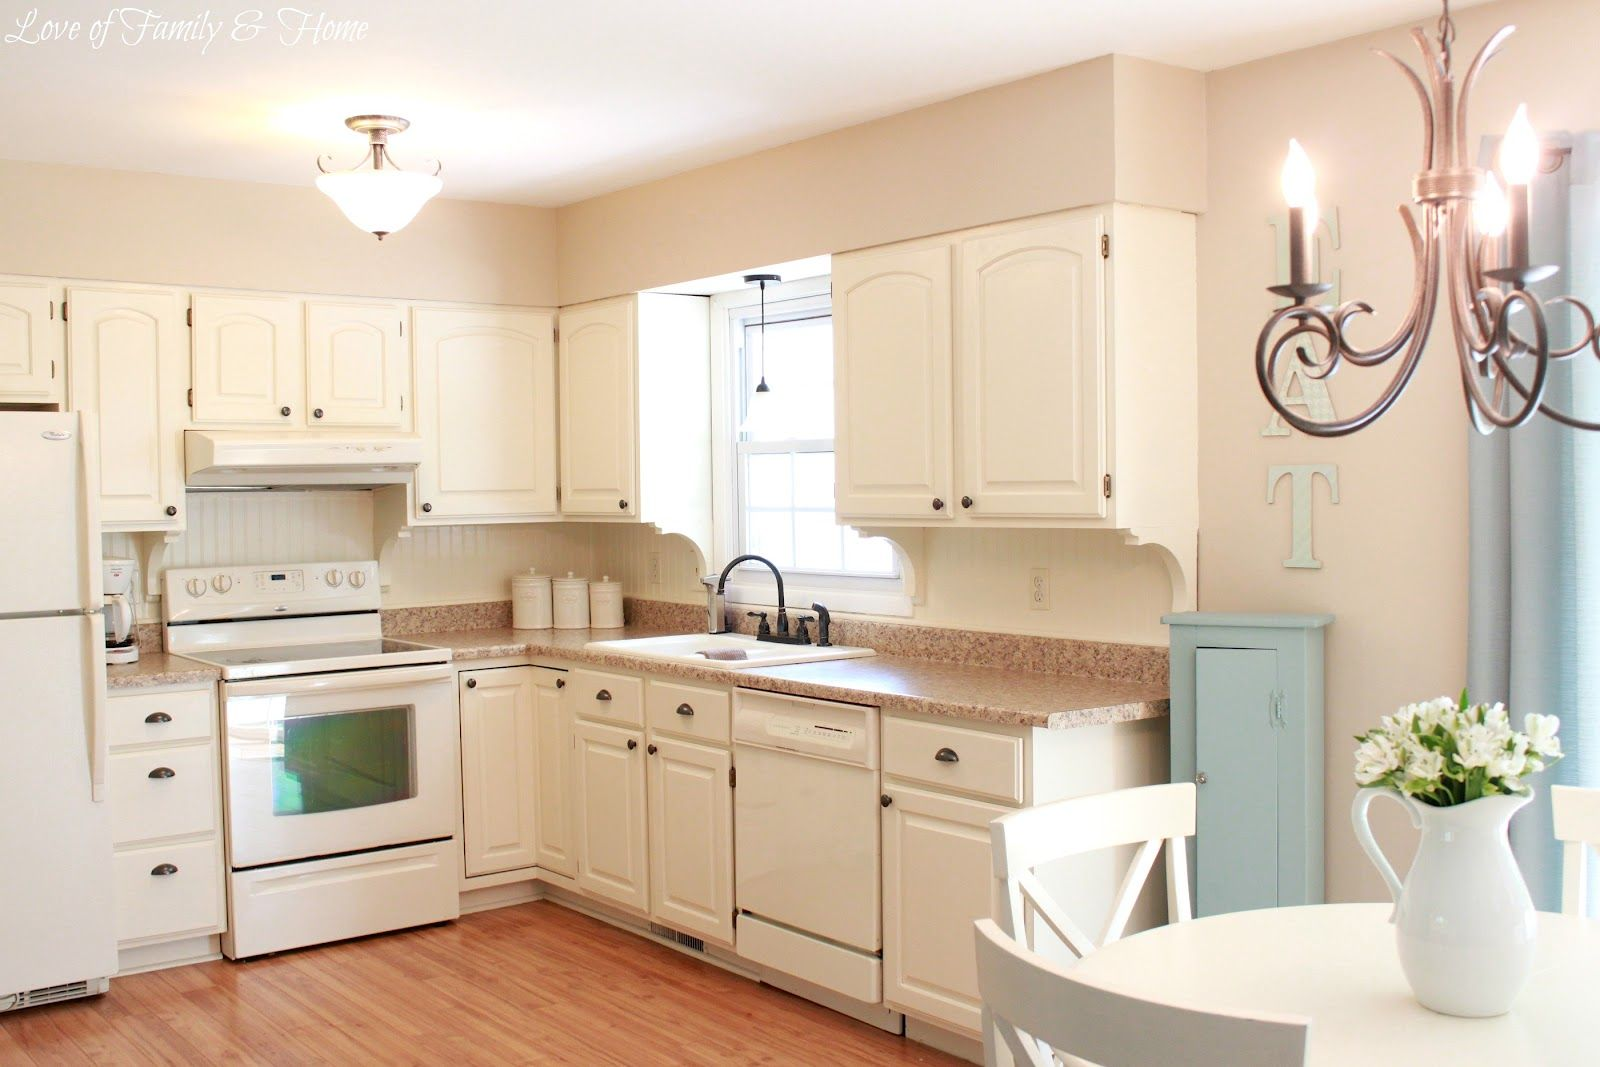 Beadboard Backsplash Kitchen with painted cupboards and